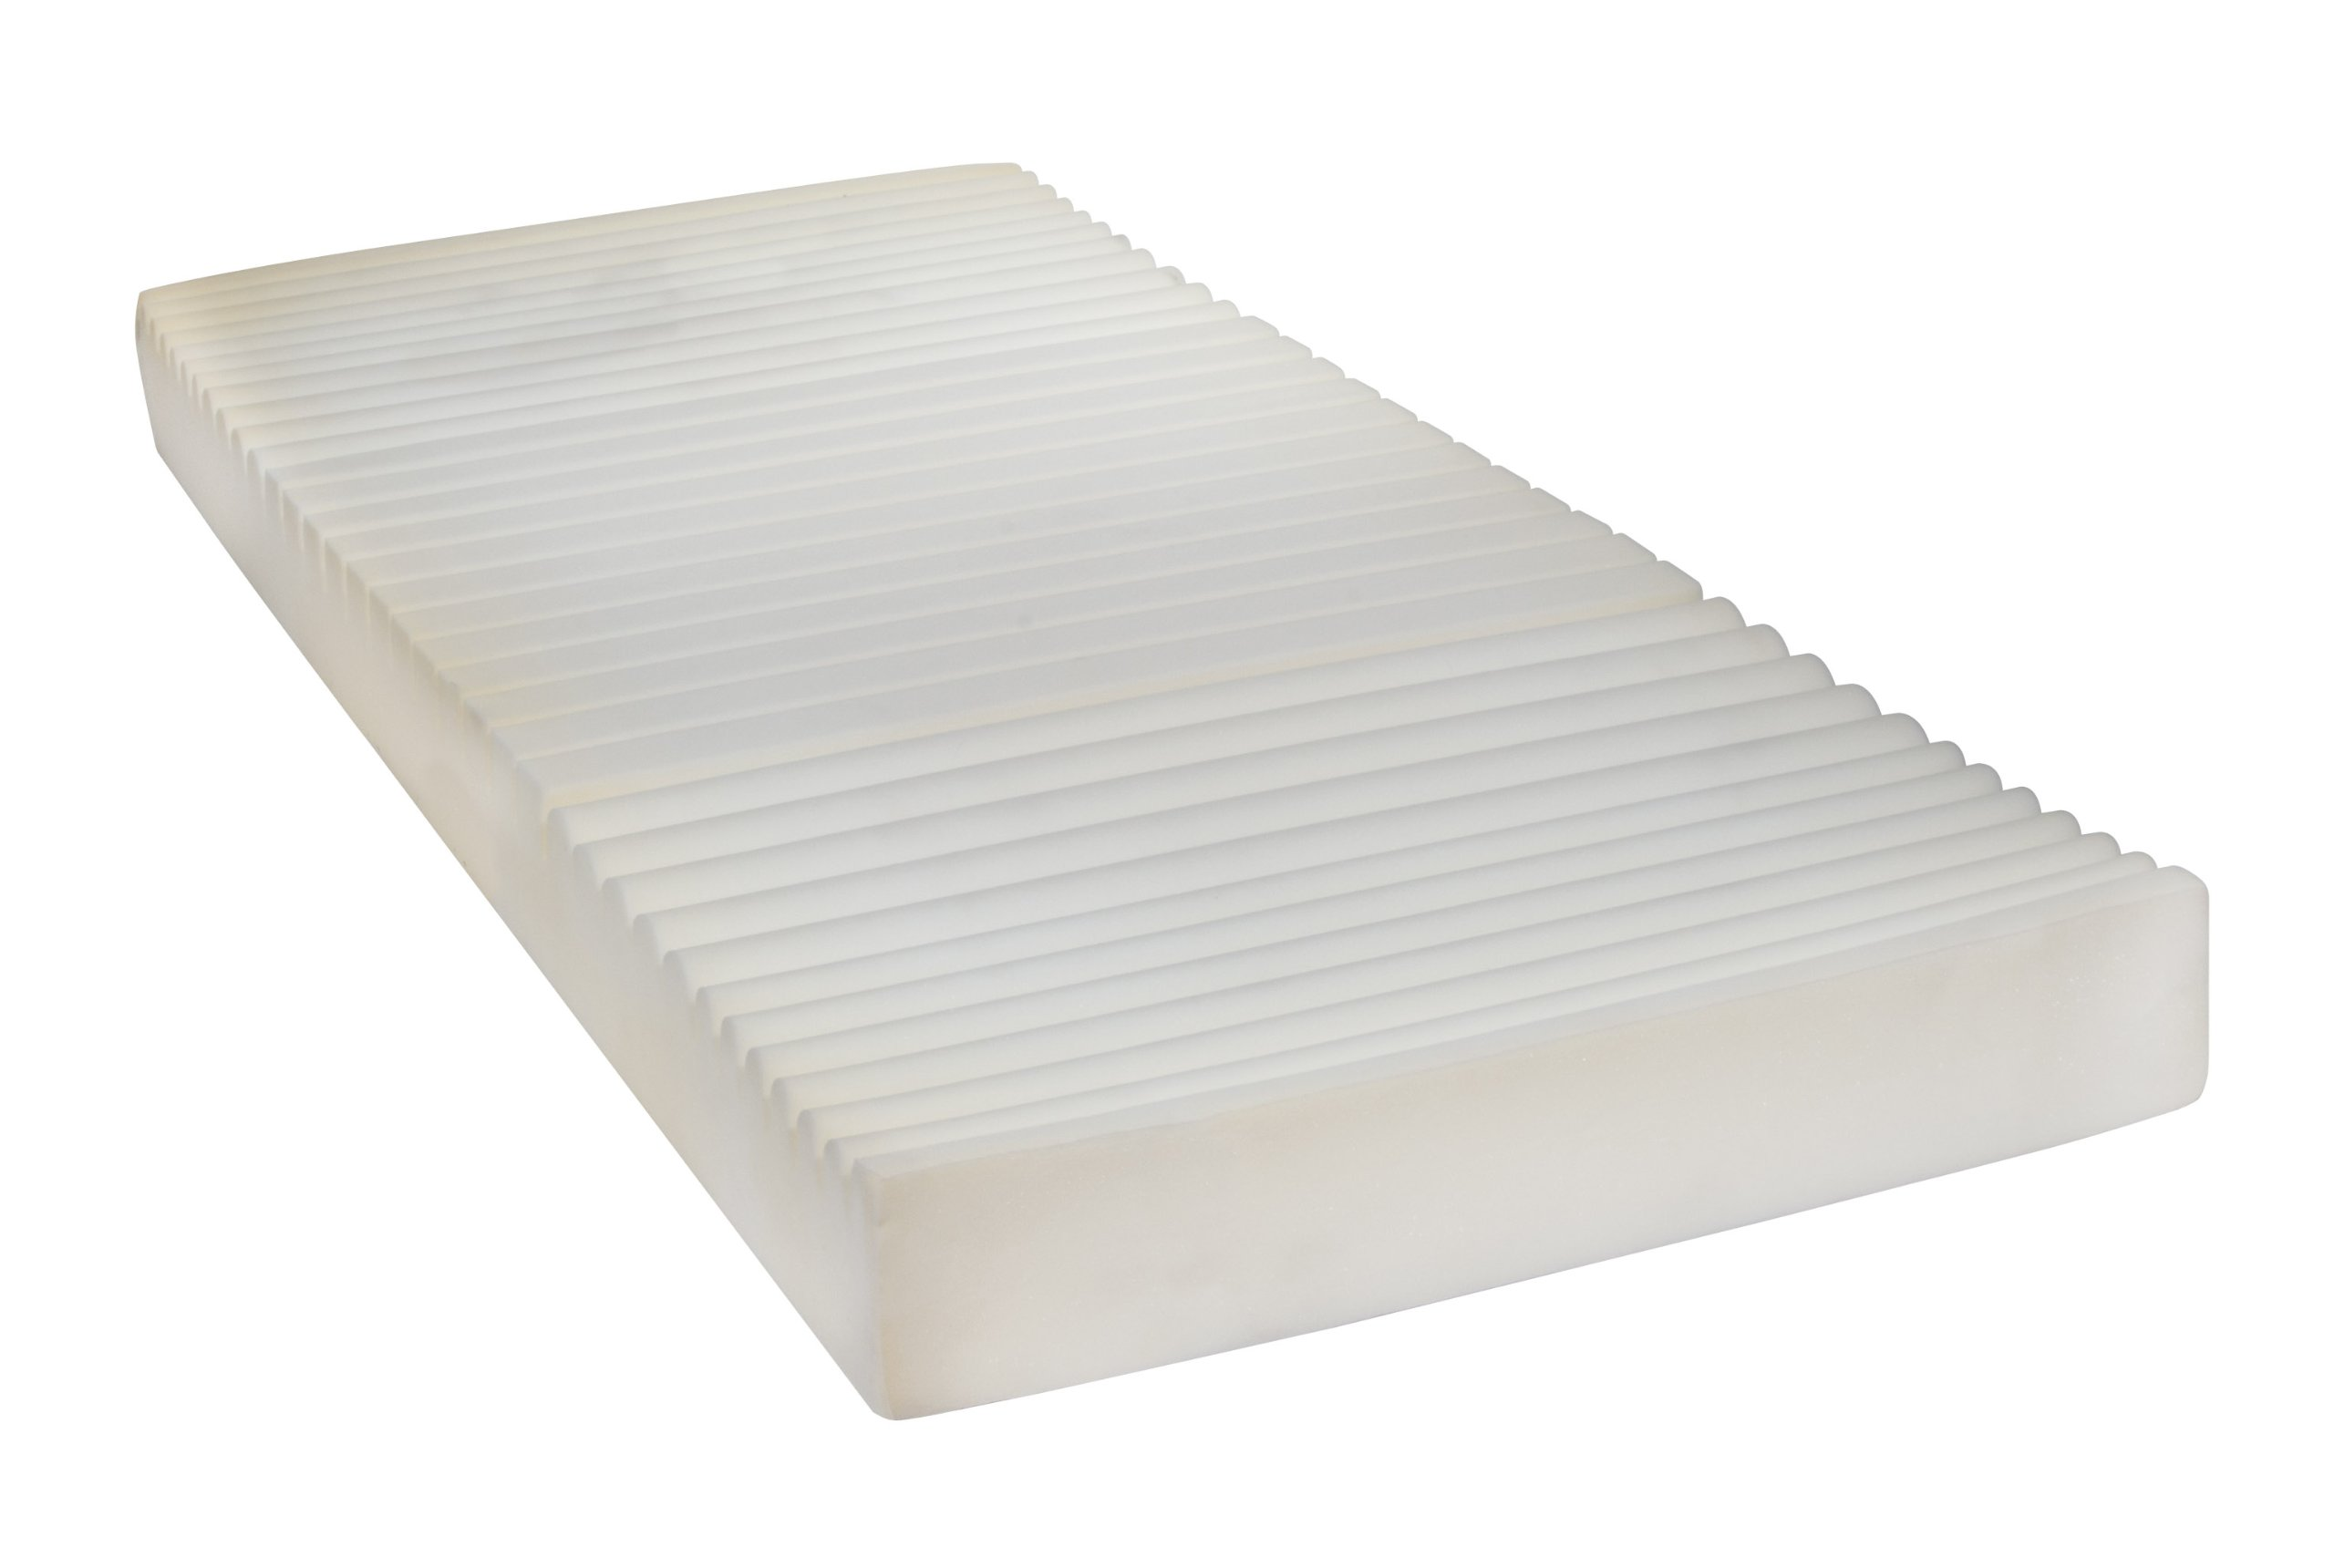 Drive Medical Therapeutic 5 Zone Support Mattress, White, 35'' x 80'' x 5. 5'' by Drive Medical